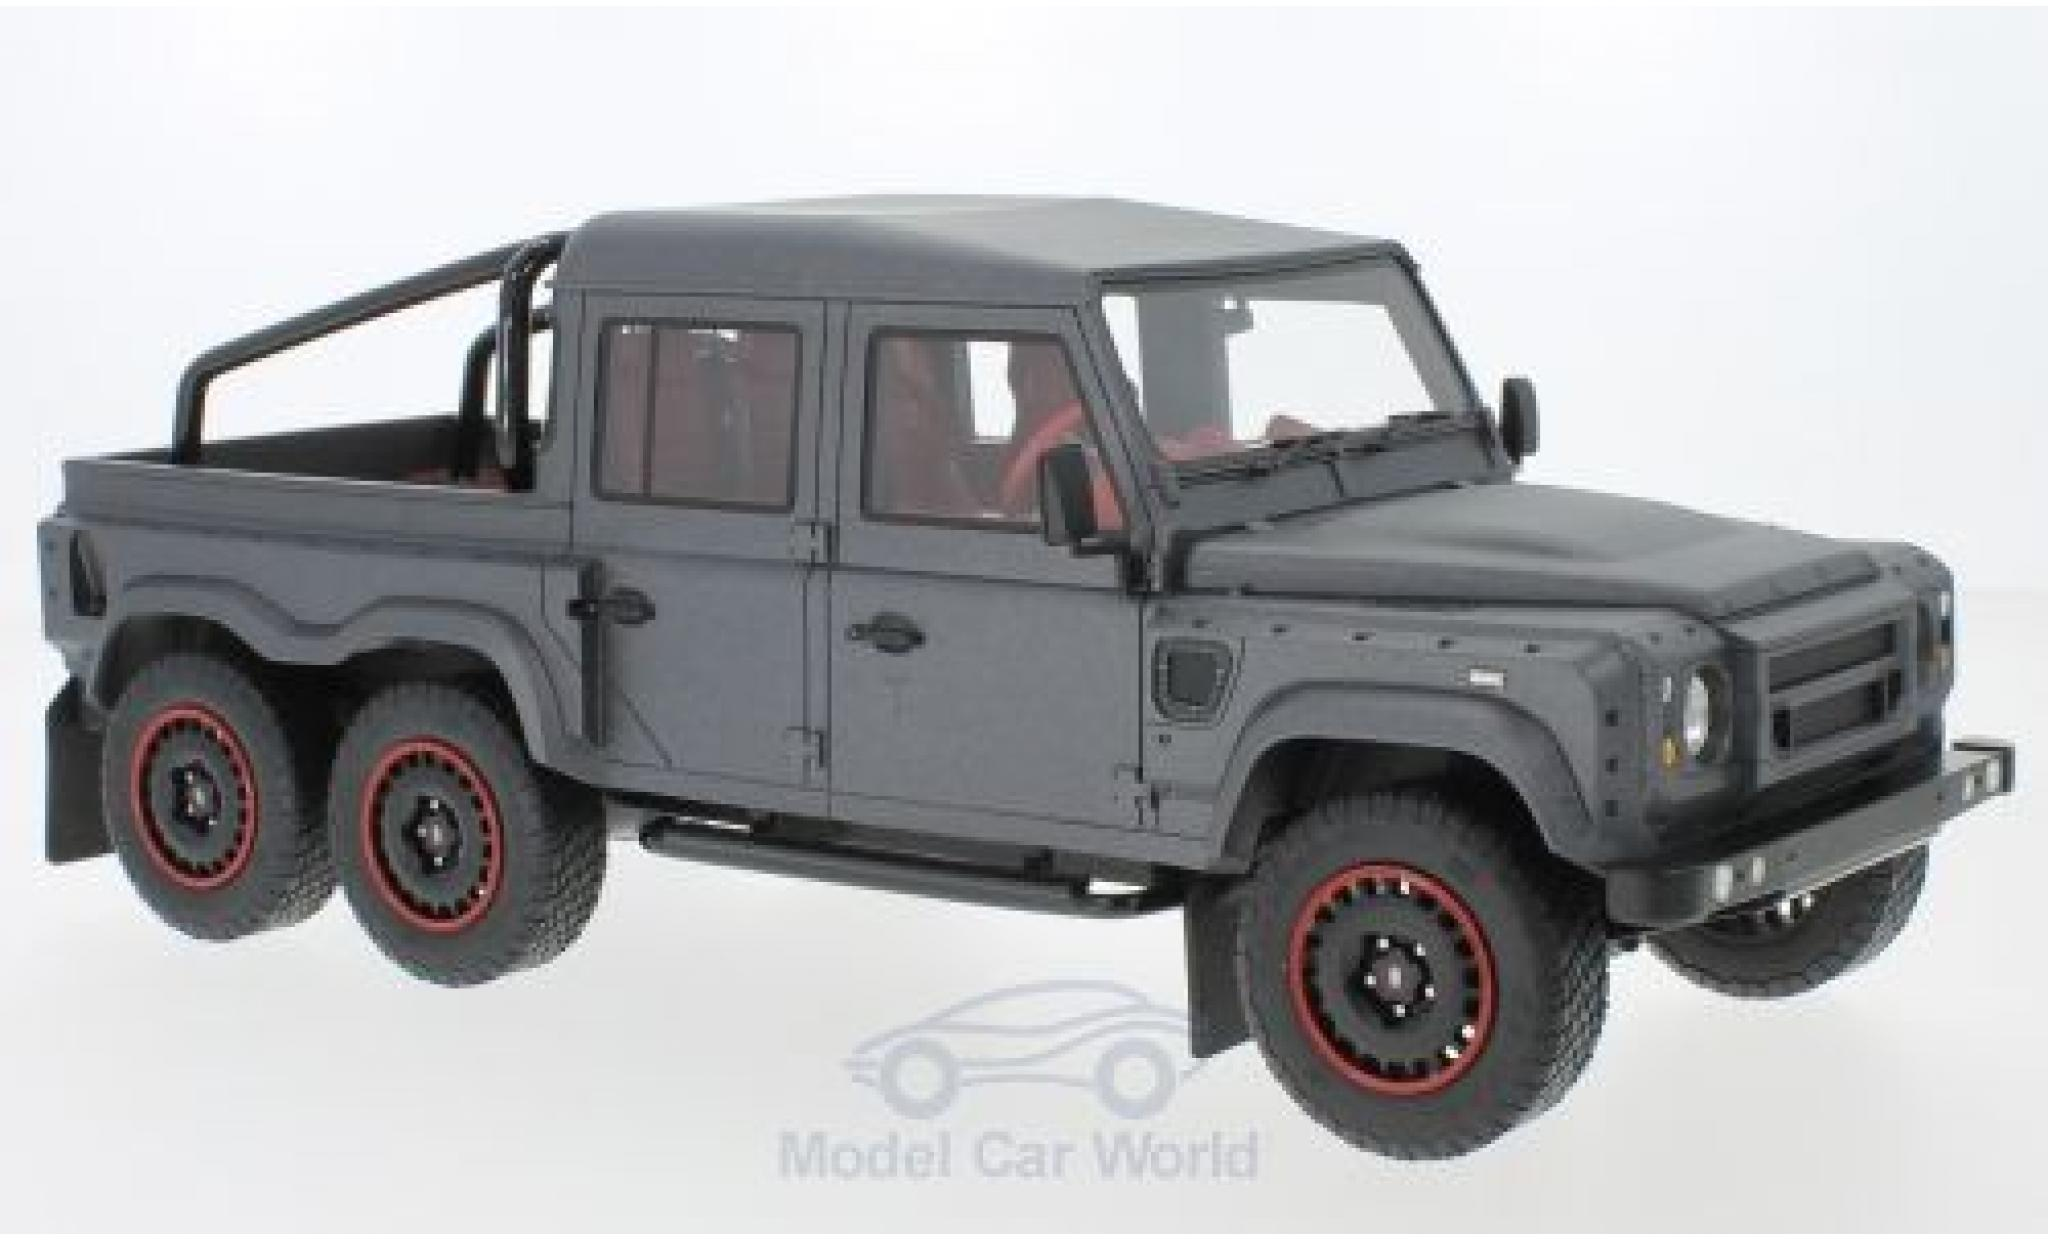 Contemporary Manufacture Cmf 1 18 2015 Land Rover Defender Flying Huntsman 6x6 Rhd Cmf18115 Pick Up Toys Hobbies